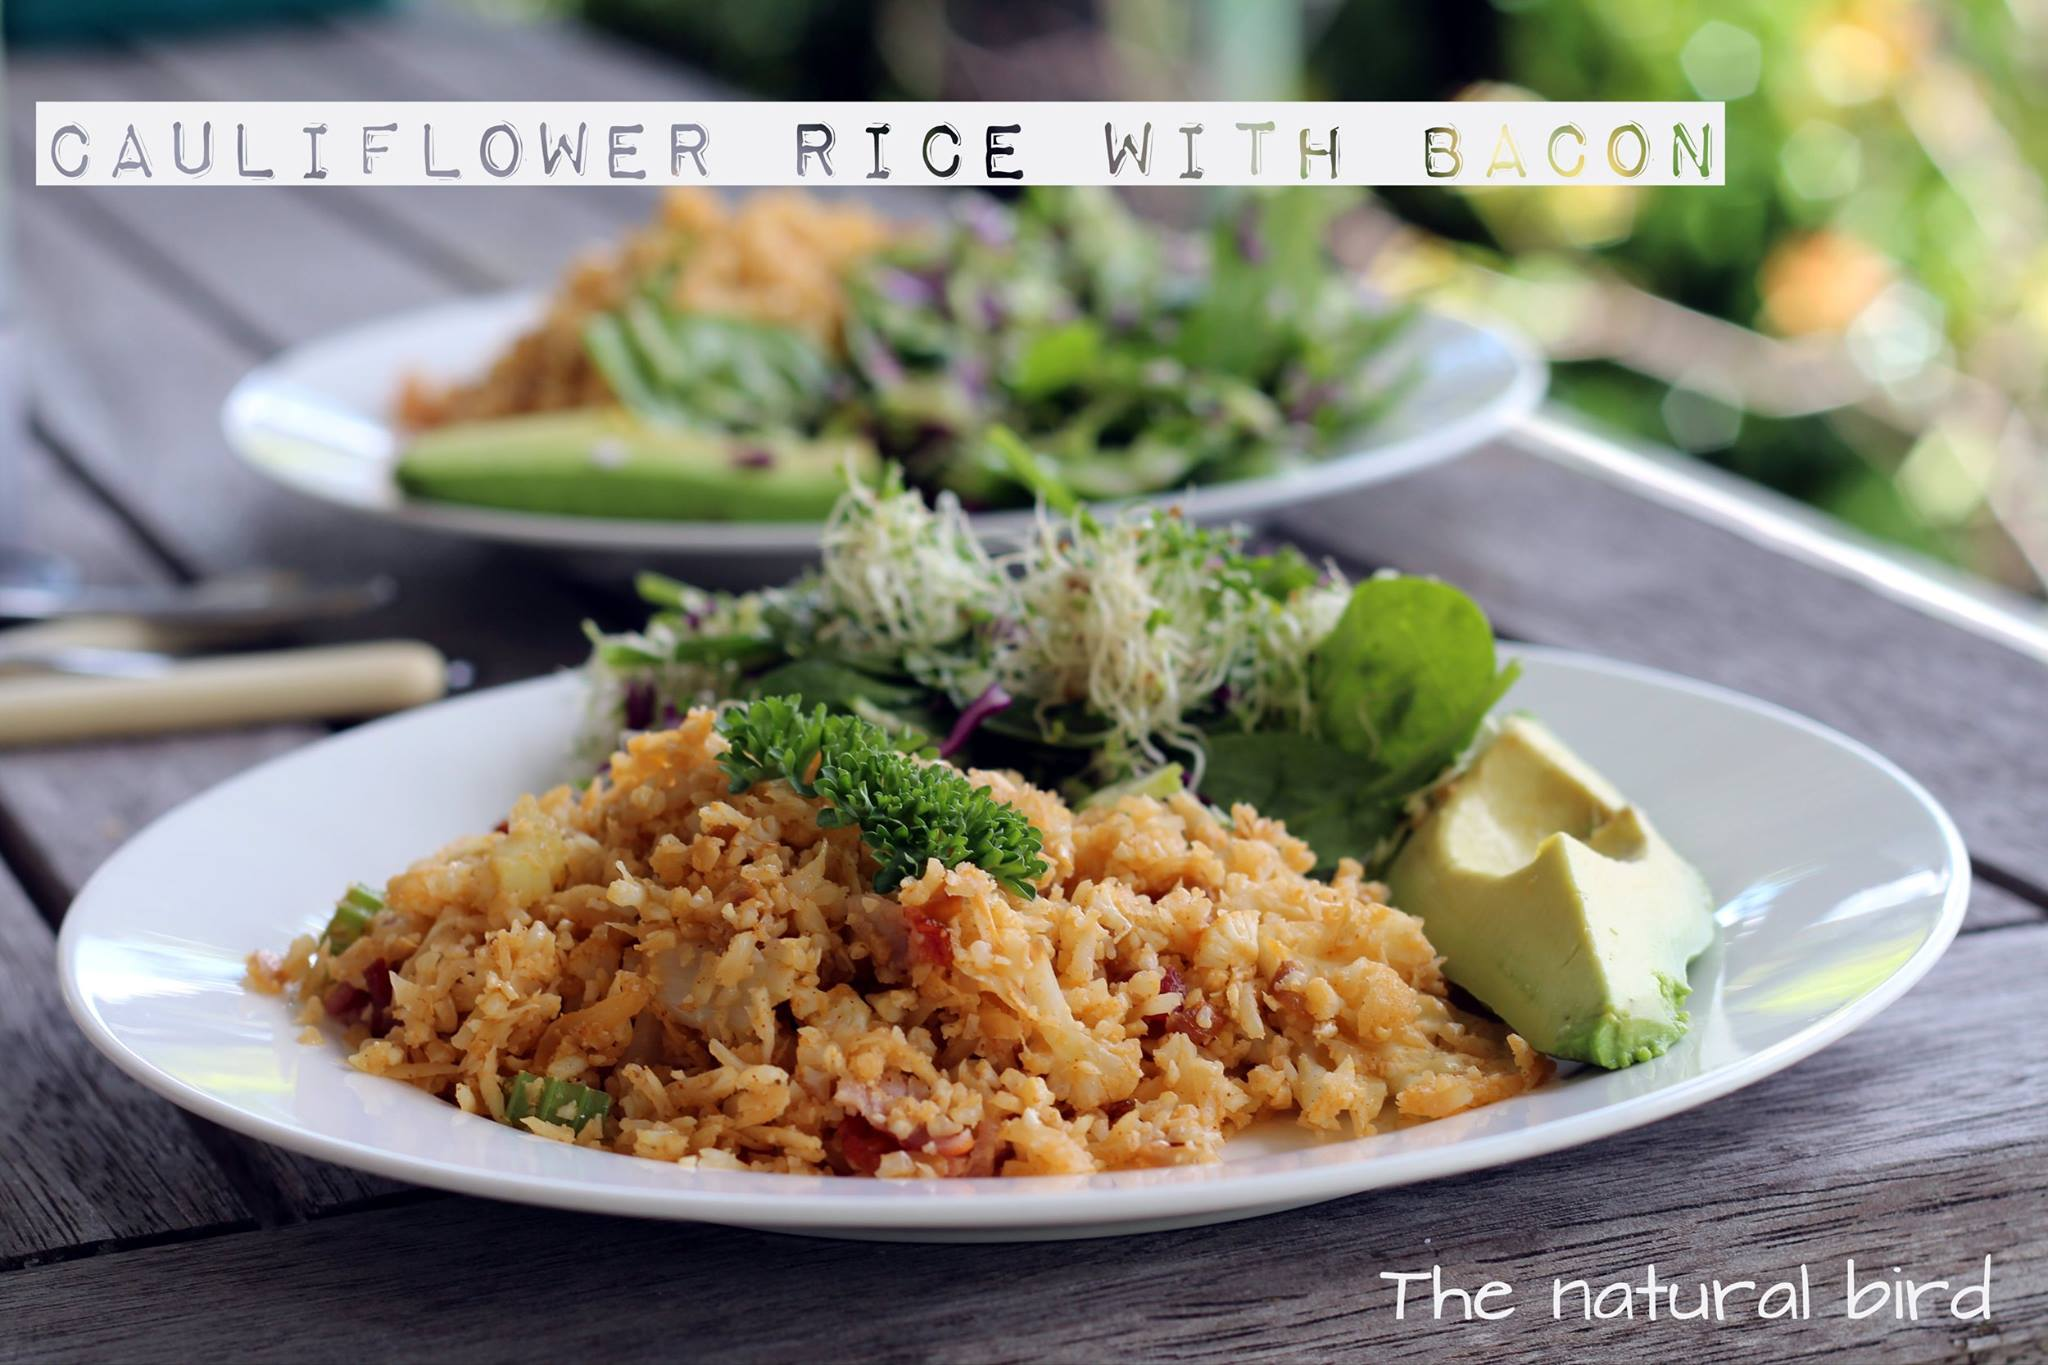 Cauliflower rice is the bomb!